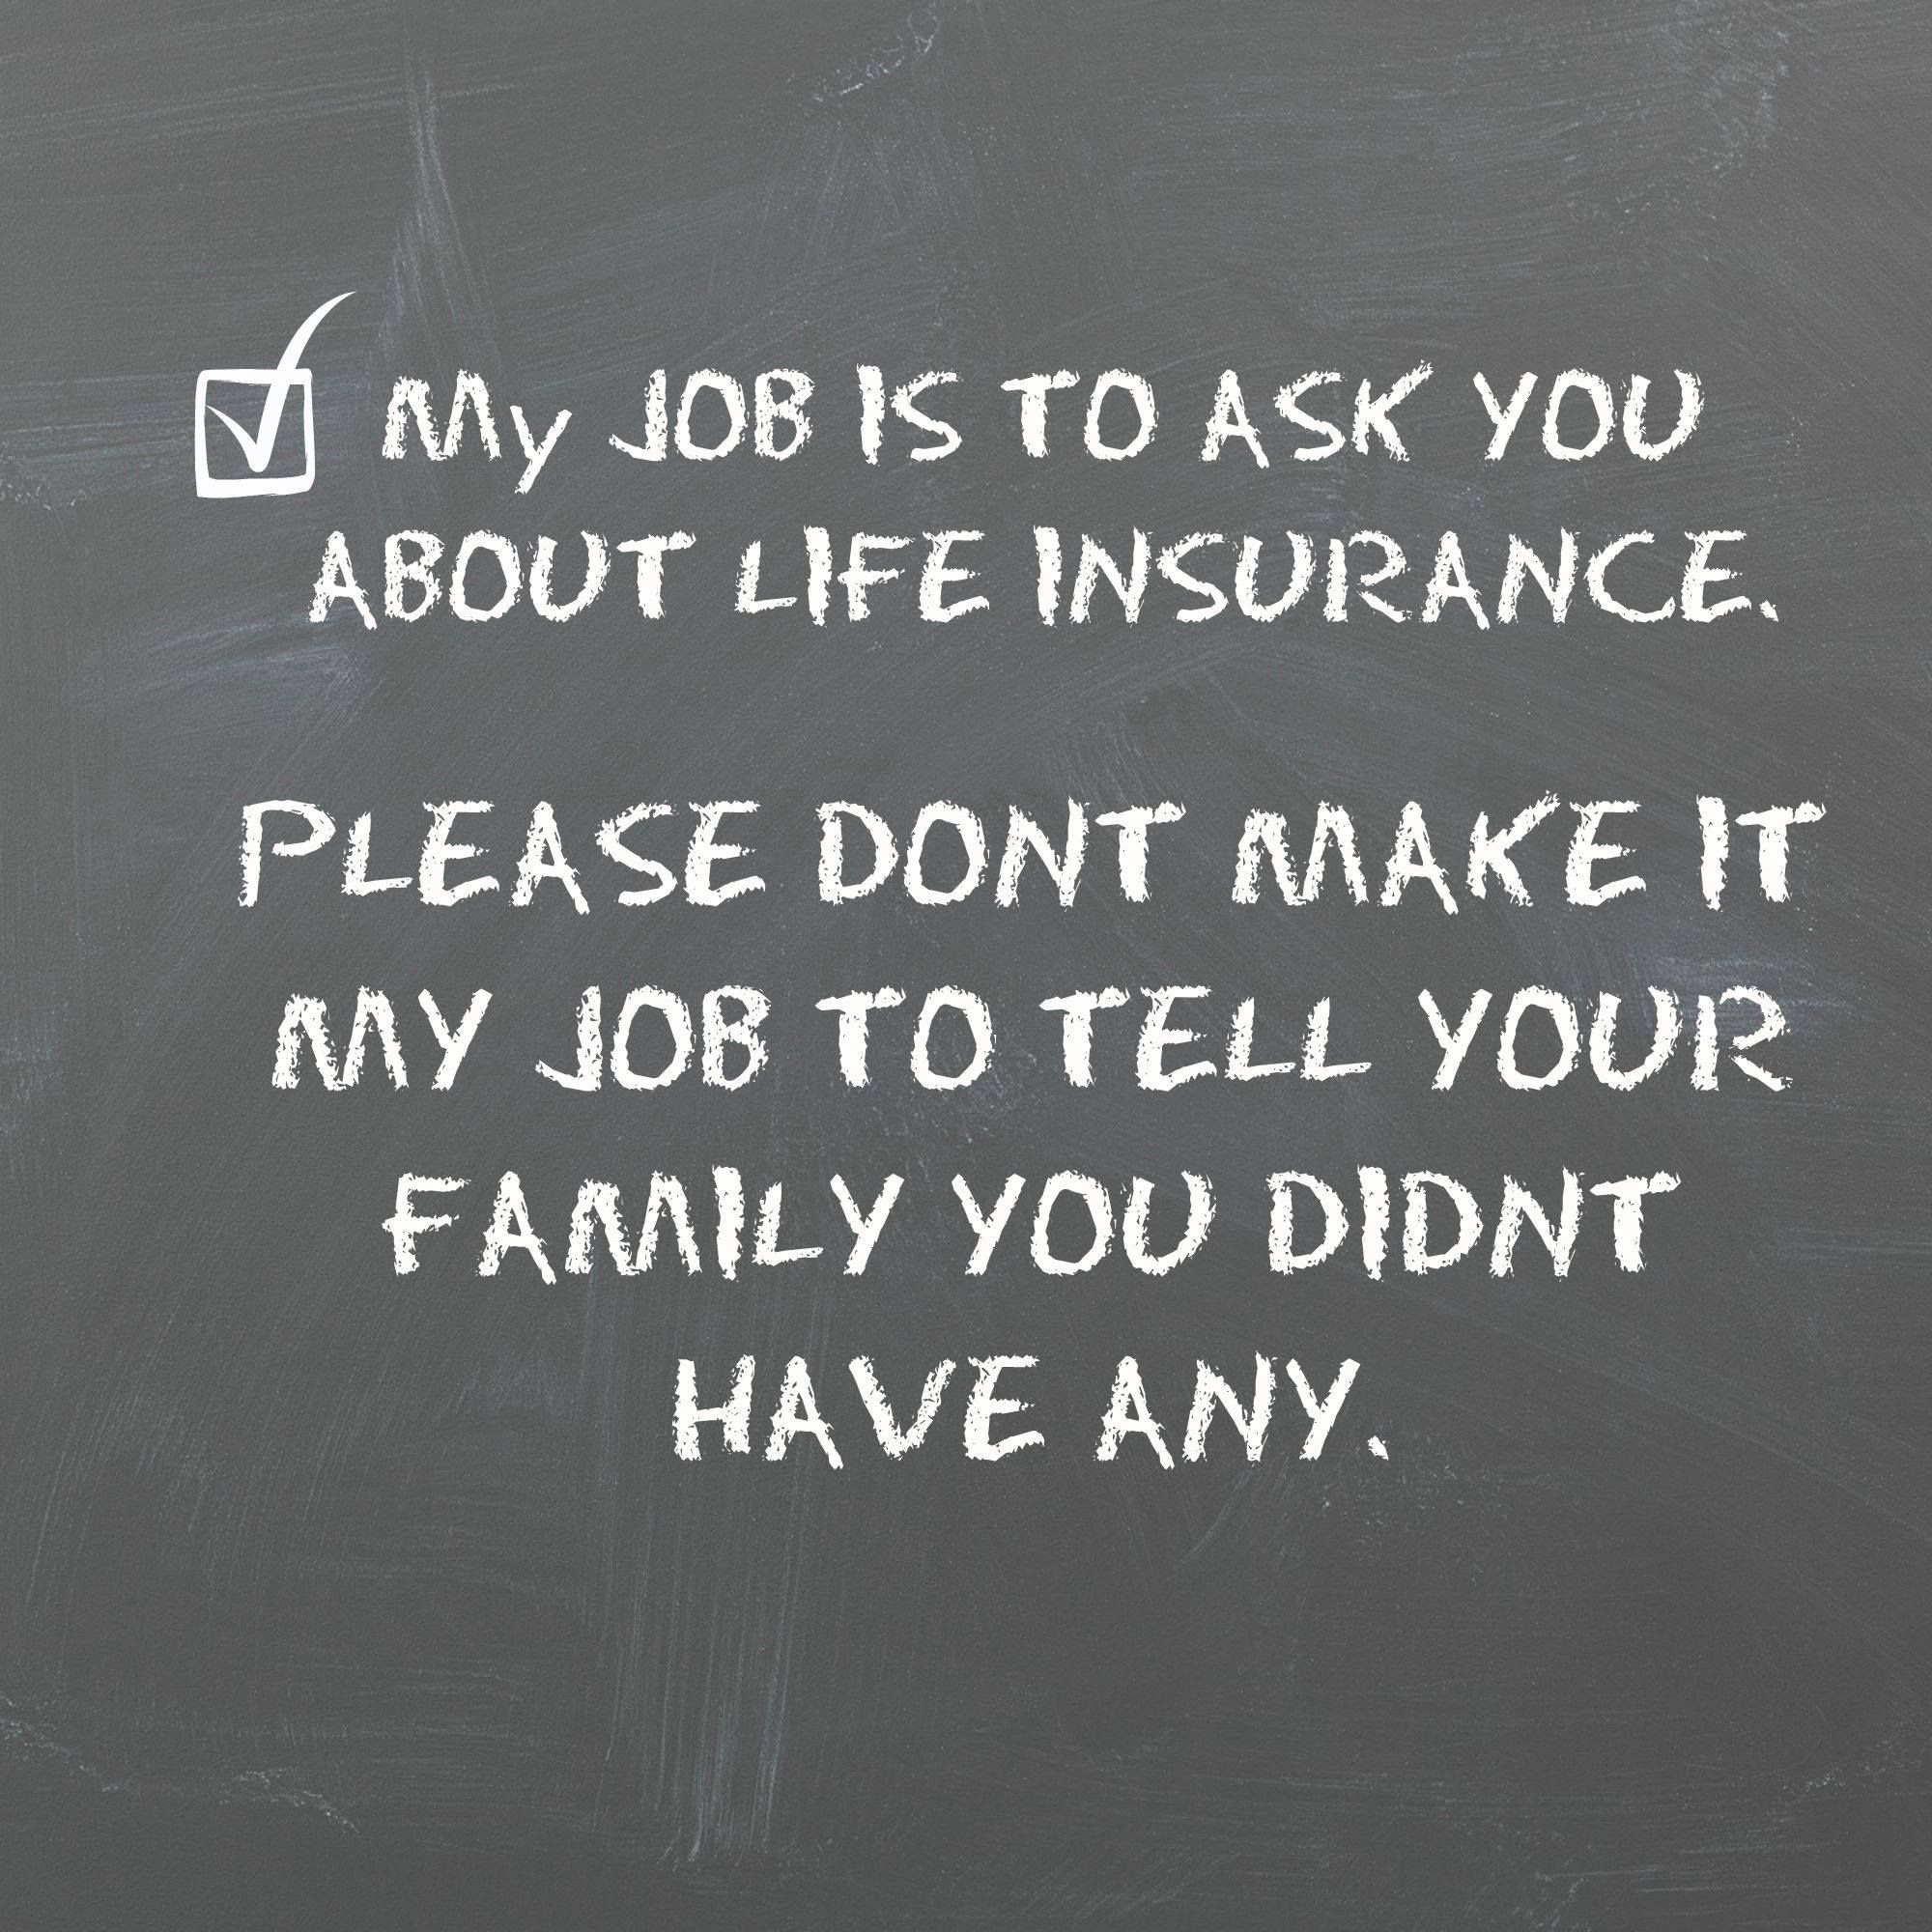 Life Insurance Quote Cool Call Us For Any #lifeinsurance Questions That You Have At 330225